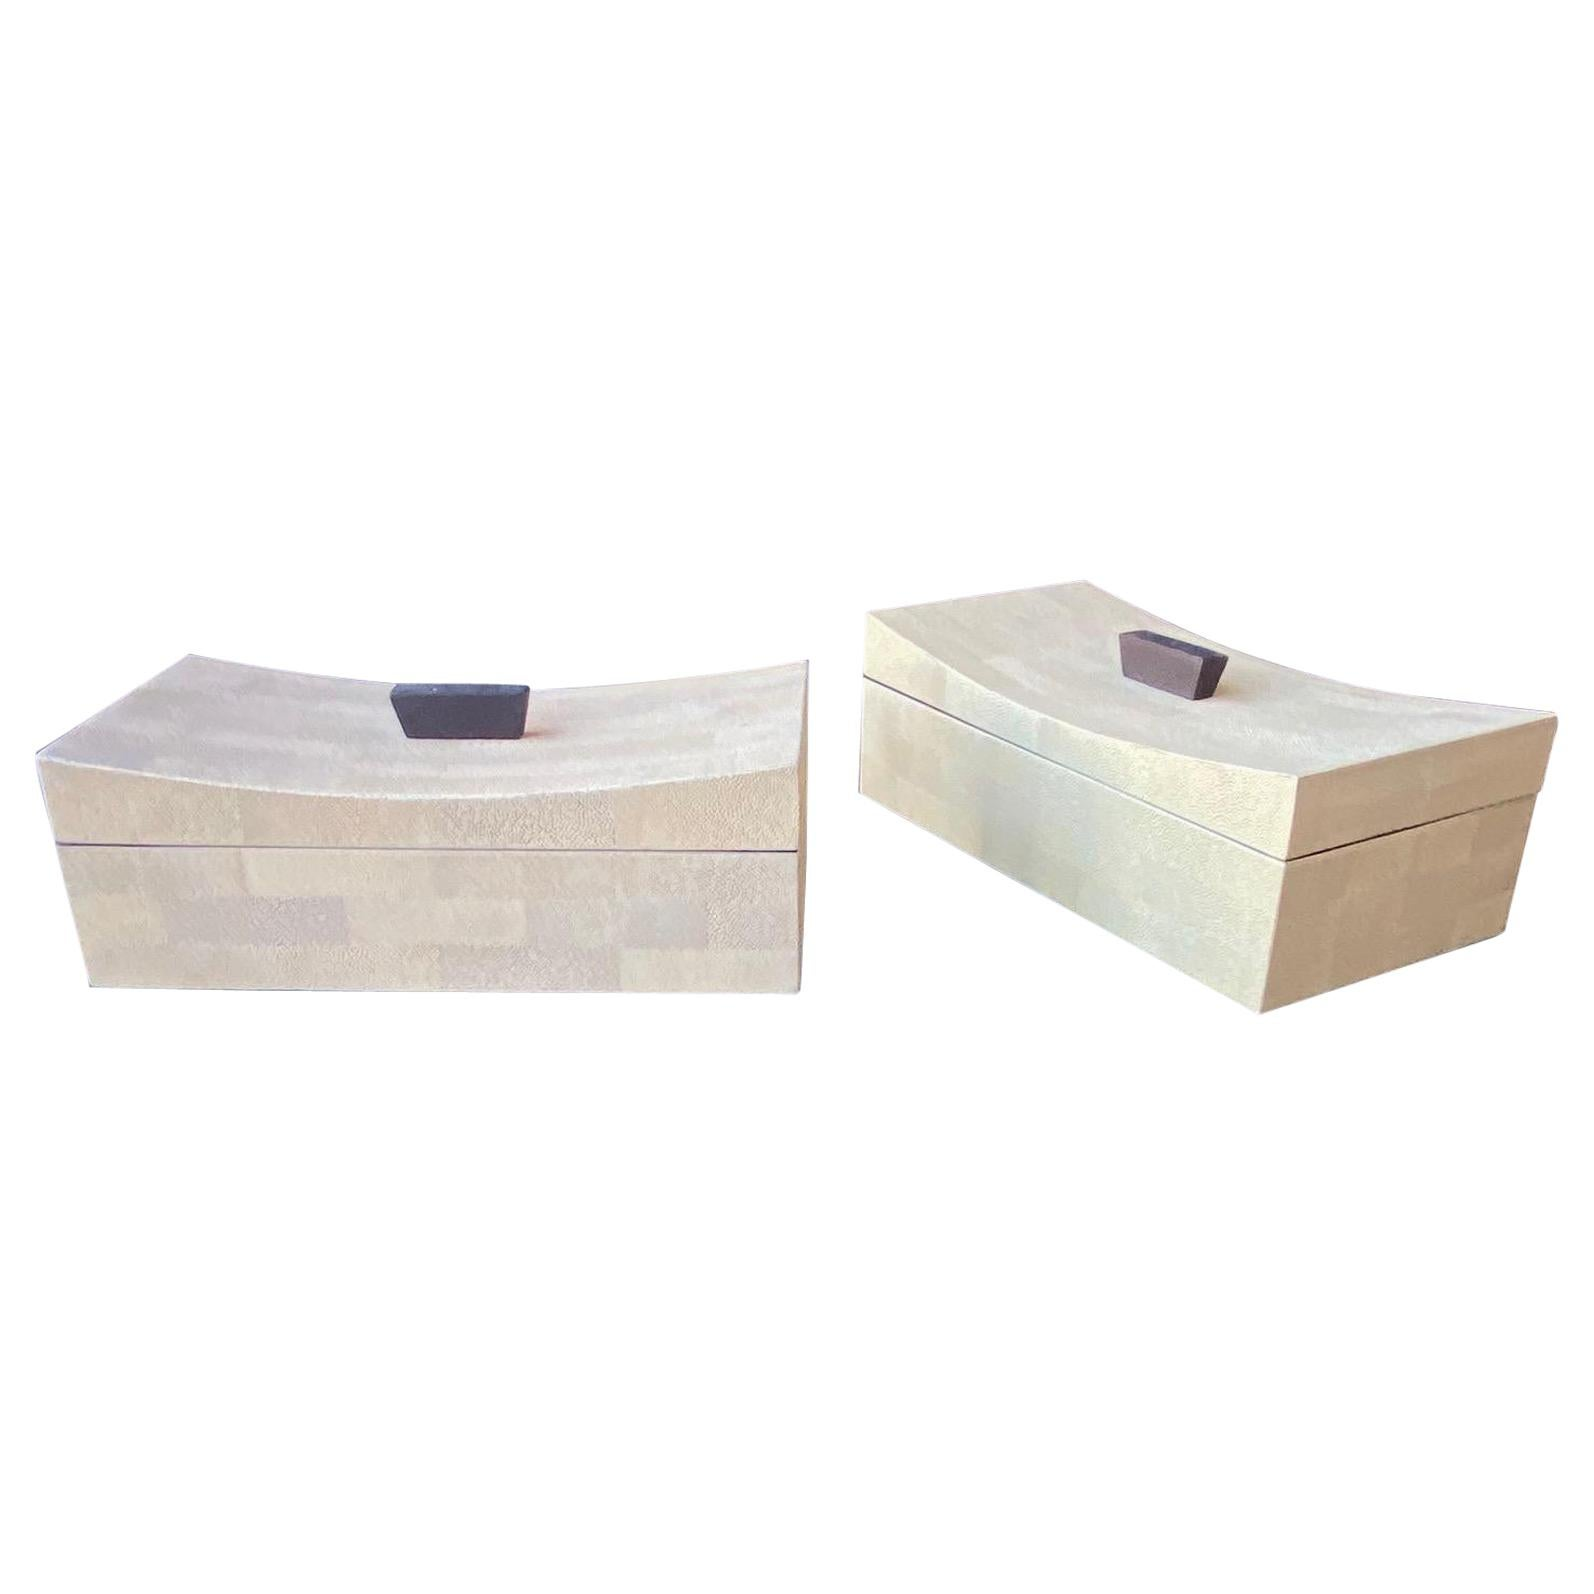 Pair of Shagreen Boxes, U.S.A. 1990s